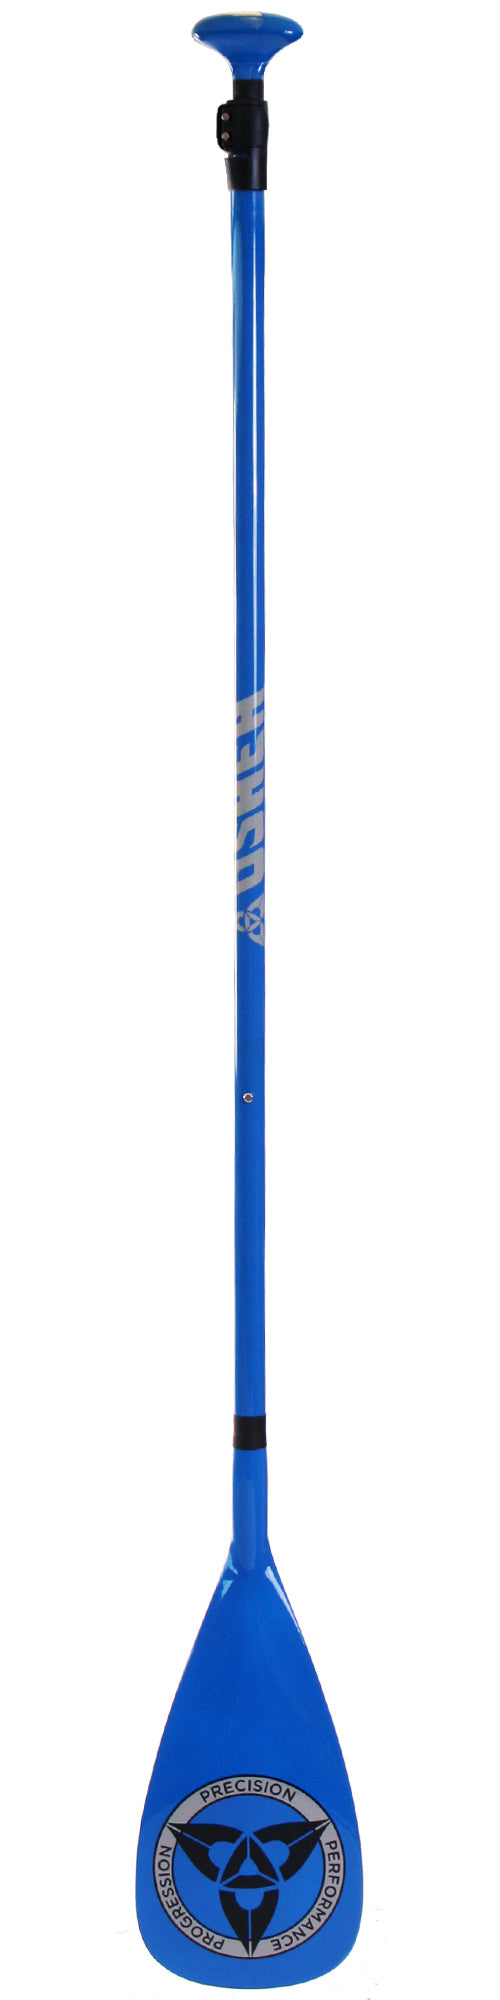 O'Shea Fiberglass Pro Adjustable 3 Piece Paddle - Blue